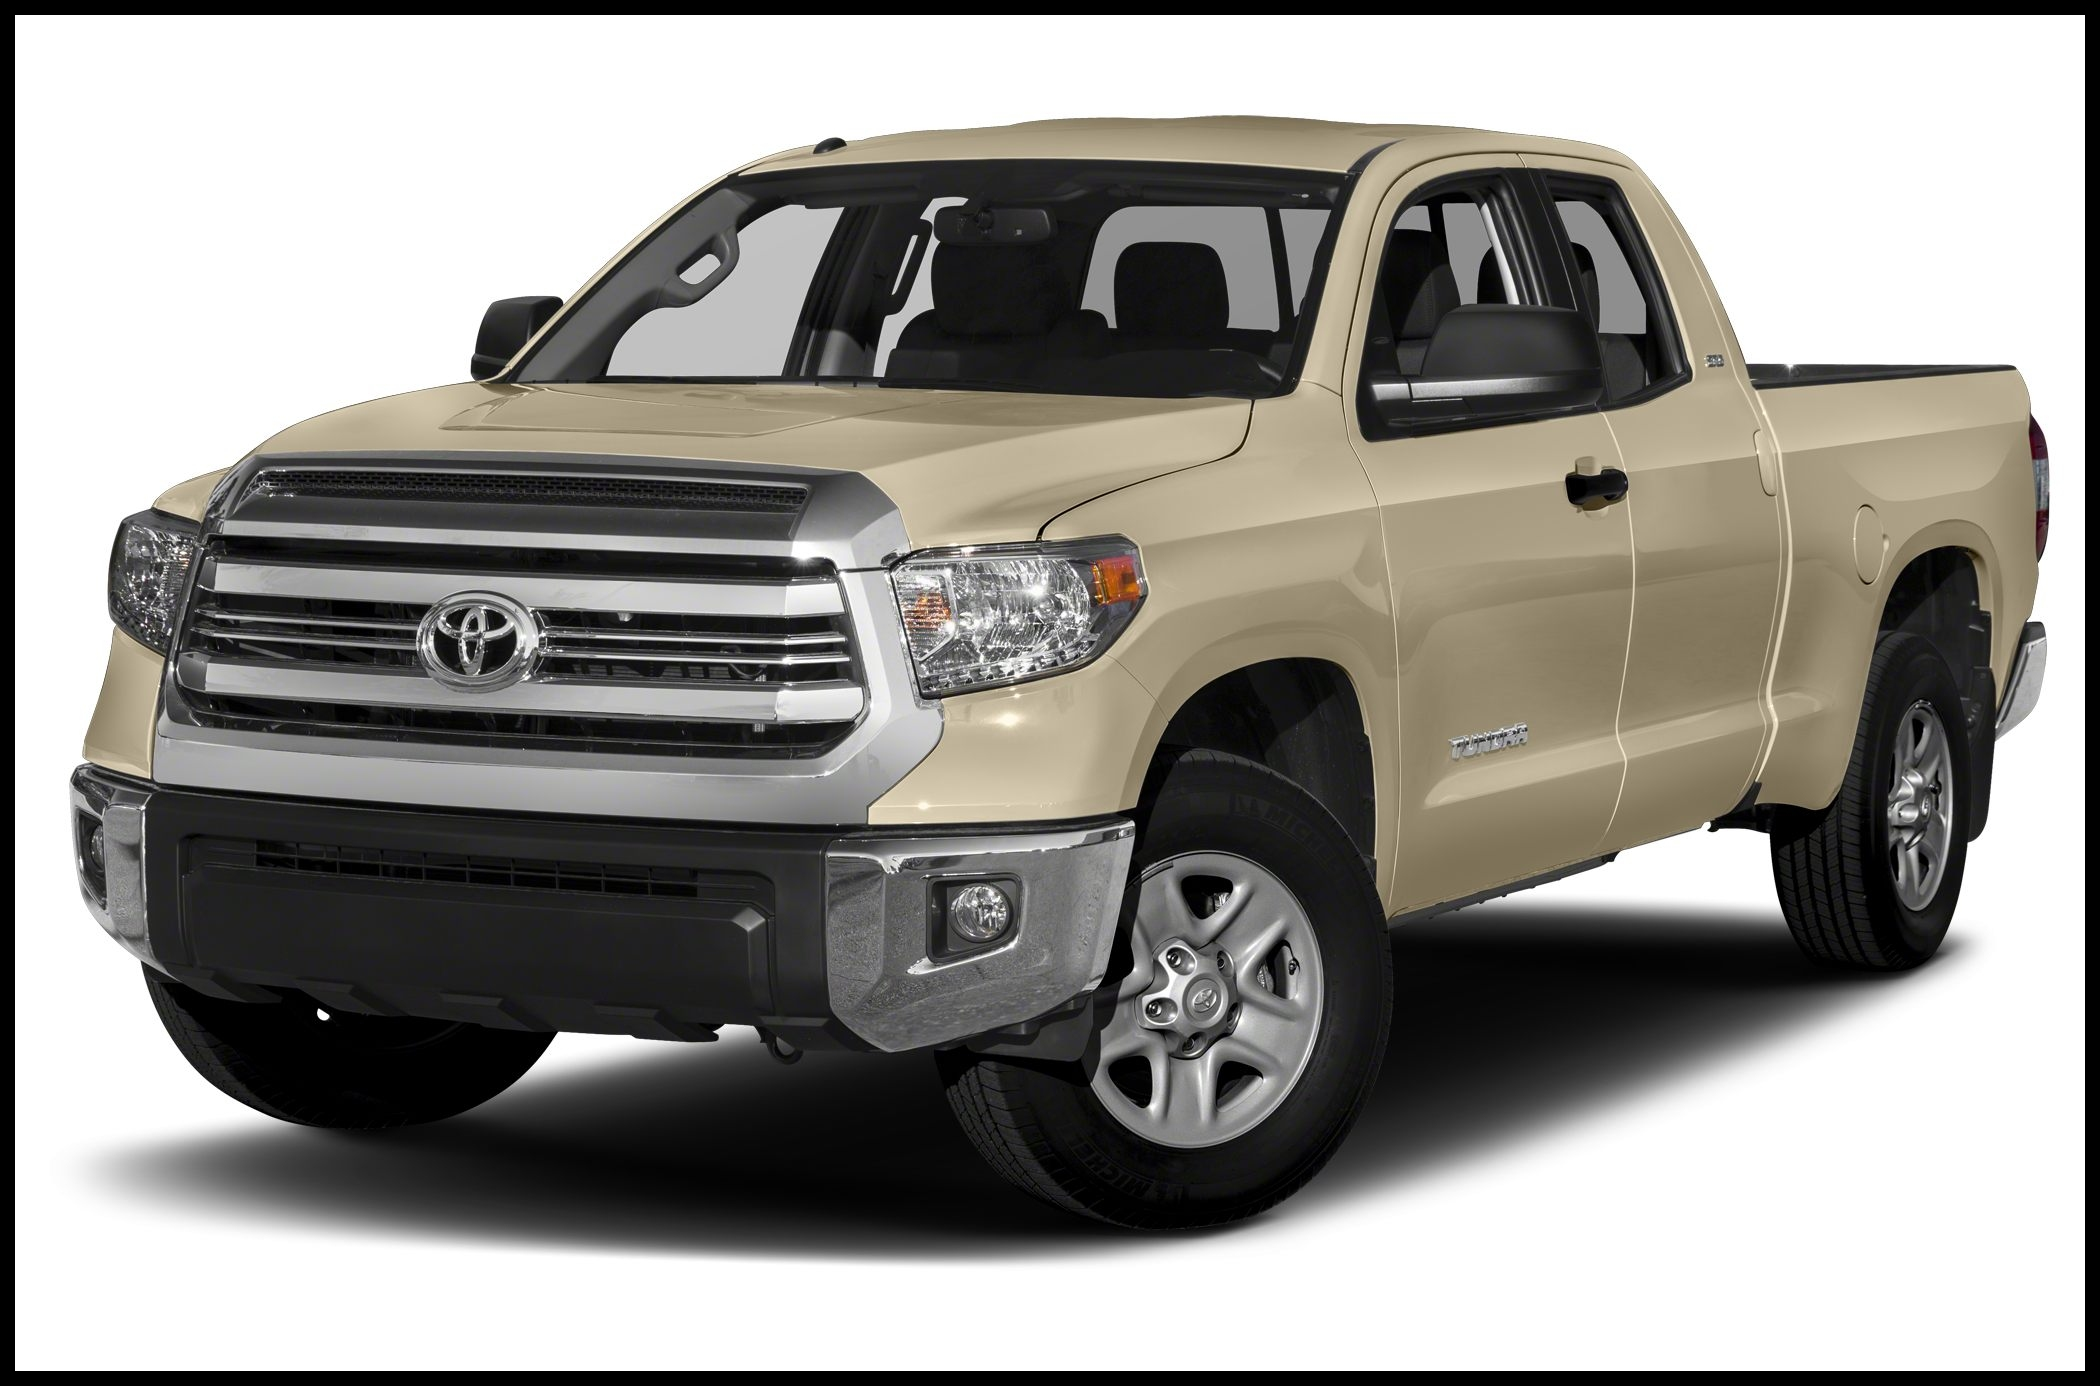 2017 Toyota Tundra SR5 5 7L V8 4x4 Double Cab Long Bed 8 ft box 164 6 in WB Pricing and Options